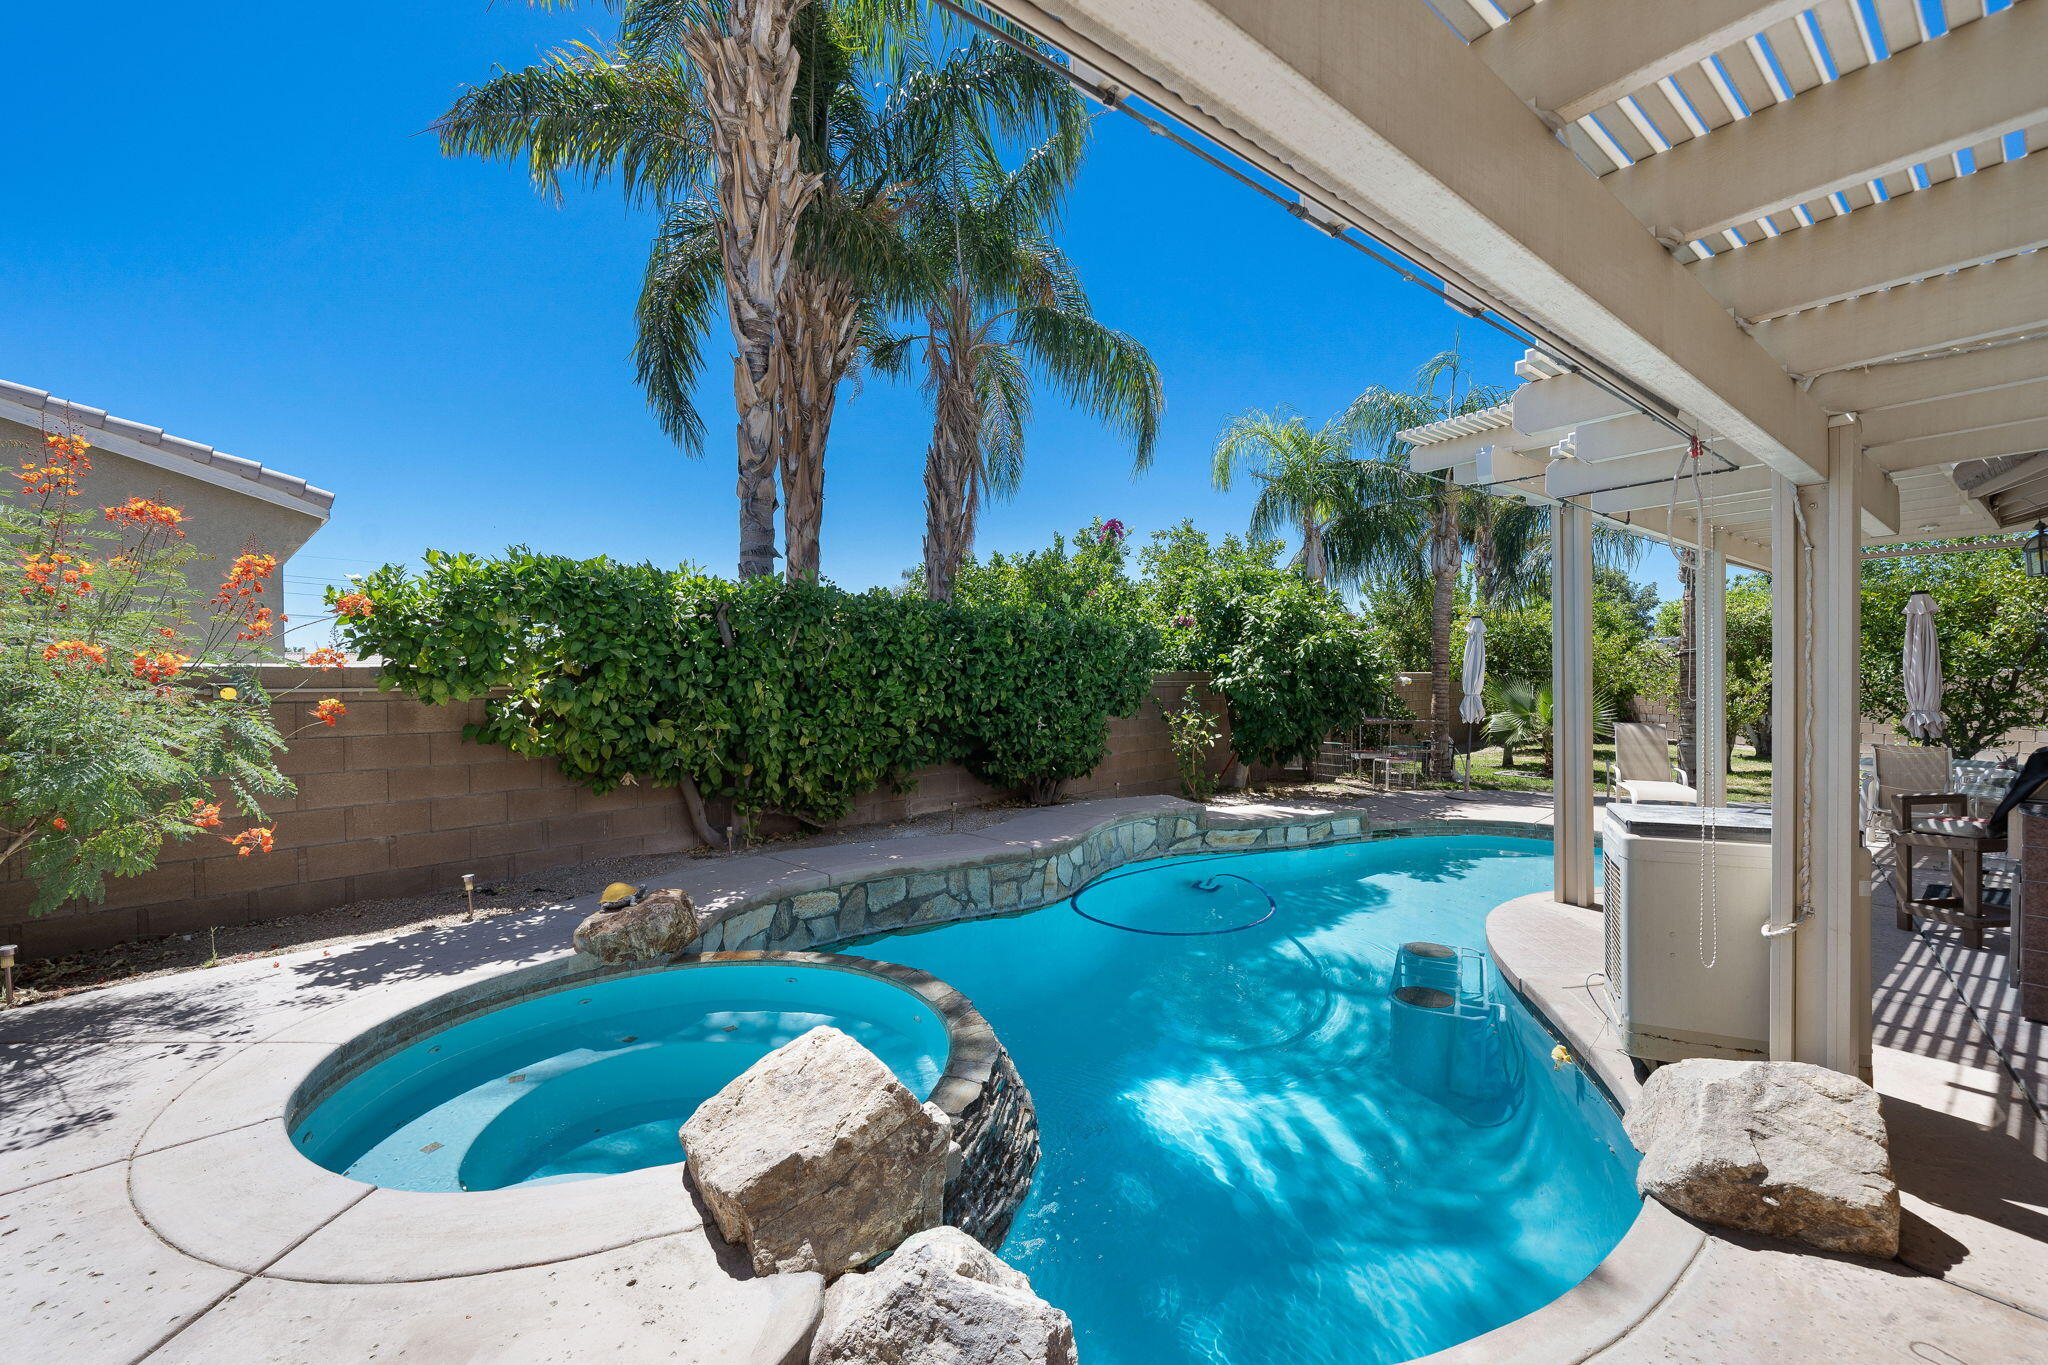 Meticulously maintained Las Brisas II home with inviting pool and spa, RV parking, and a 9,148sqft. lot on a private cul-de-sac location. Residing in a 55 plus community, this single family residence has 1691sqft. of interior living space, including 3 BD/2 BA, den/office, & separate dining area. The great room has a dual-sided fireplace, vaulted ceilings, nice architectural detail and open feel. The adjacent and functional kitchen has a large breakfast bar, tiled countertops/backsplash, with accent tile and bullnose edging. Also features pendant lighting, glass door walk-in pantry, built-in microwave and great pool views. Upgrades are abundant throughout this home, and include a Boss whole-house Water Softener with purification system, Hunter Efficient Water Landscaping Sprinkler System AND a Zoned High Efficiency Cooling and Heating System, w/Electronic Air Cleaner and UV Light Air Purifier. The front yard has desert landscaping while the back features a salt water pool & spa, w/stacked stone spillover, multiple pergolas, extensive Zoned Mister System, fruit trees, & a built-in Lynx BBQ grill with swamp cooler. The double garage has cooling & heating with Electronic Air Cleaner (w/UV purifier) and separate swamp cooler. The garage is also completely finished & insulated, w/epoxy flooring; the attic is insulted too w/storage above garage. A hard-to-find RV parking enclosure (overall 20x60 feet) with alumawood cover, electric, sewer & water hook ups. Make an appointment today.